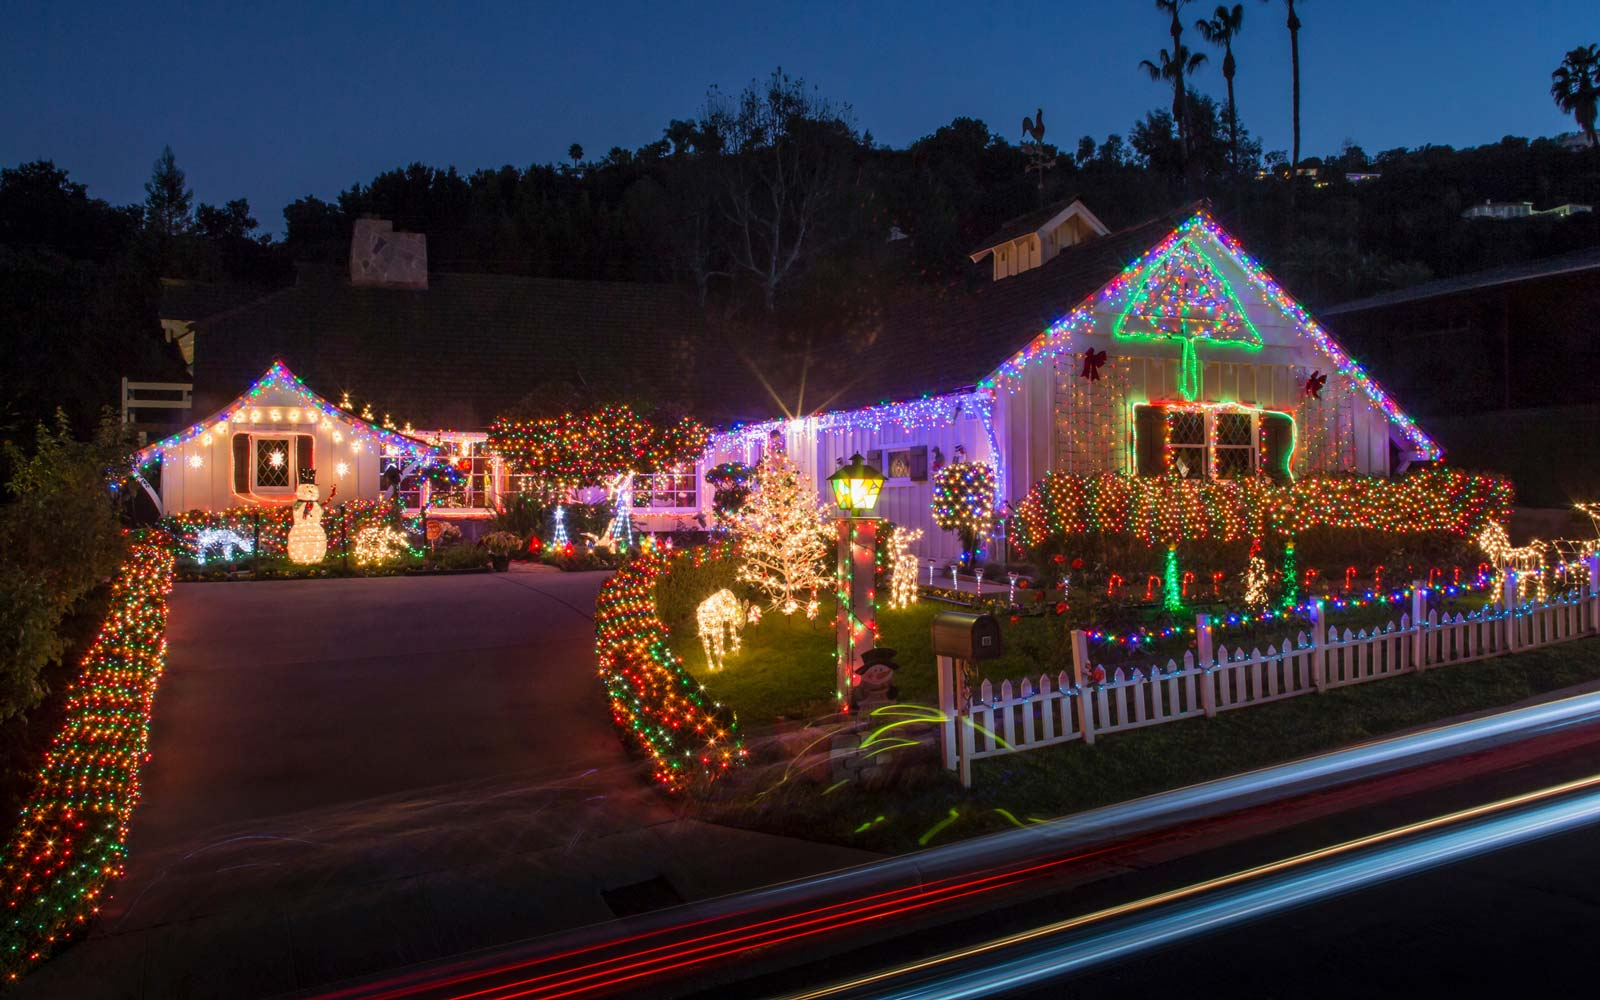 Families Who Spend Thousands of Dollars a Year on Christmas Light Displays Explain Their Obsession